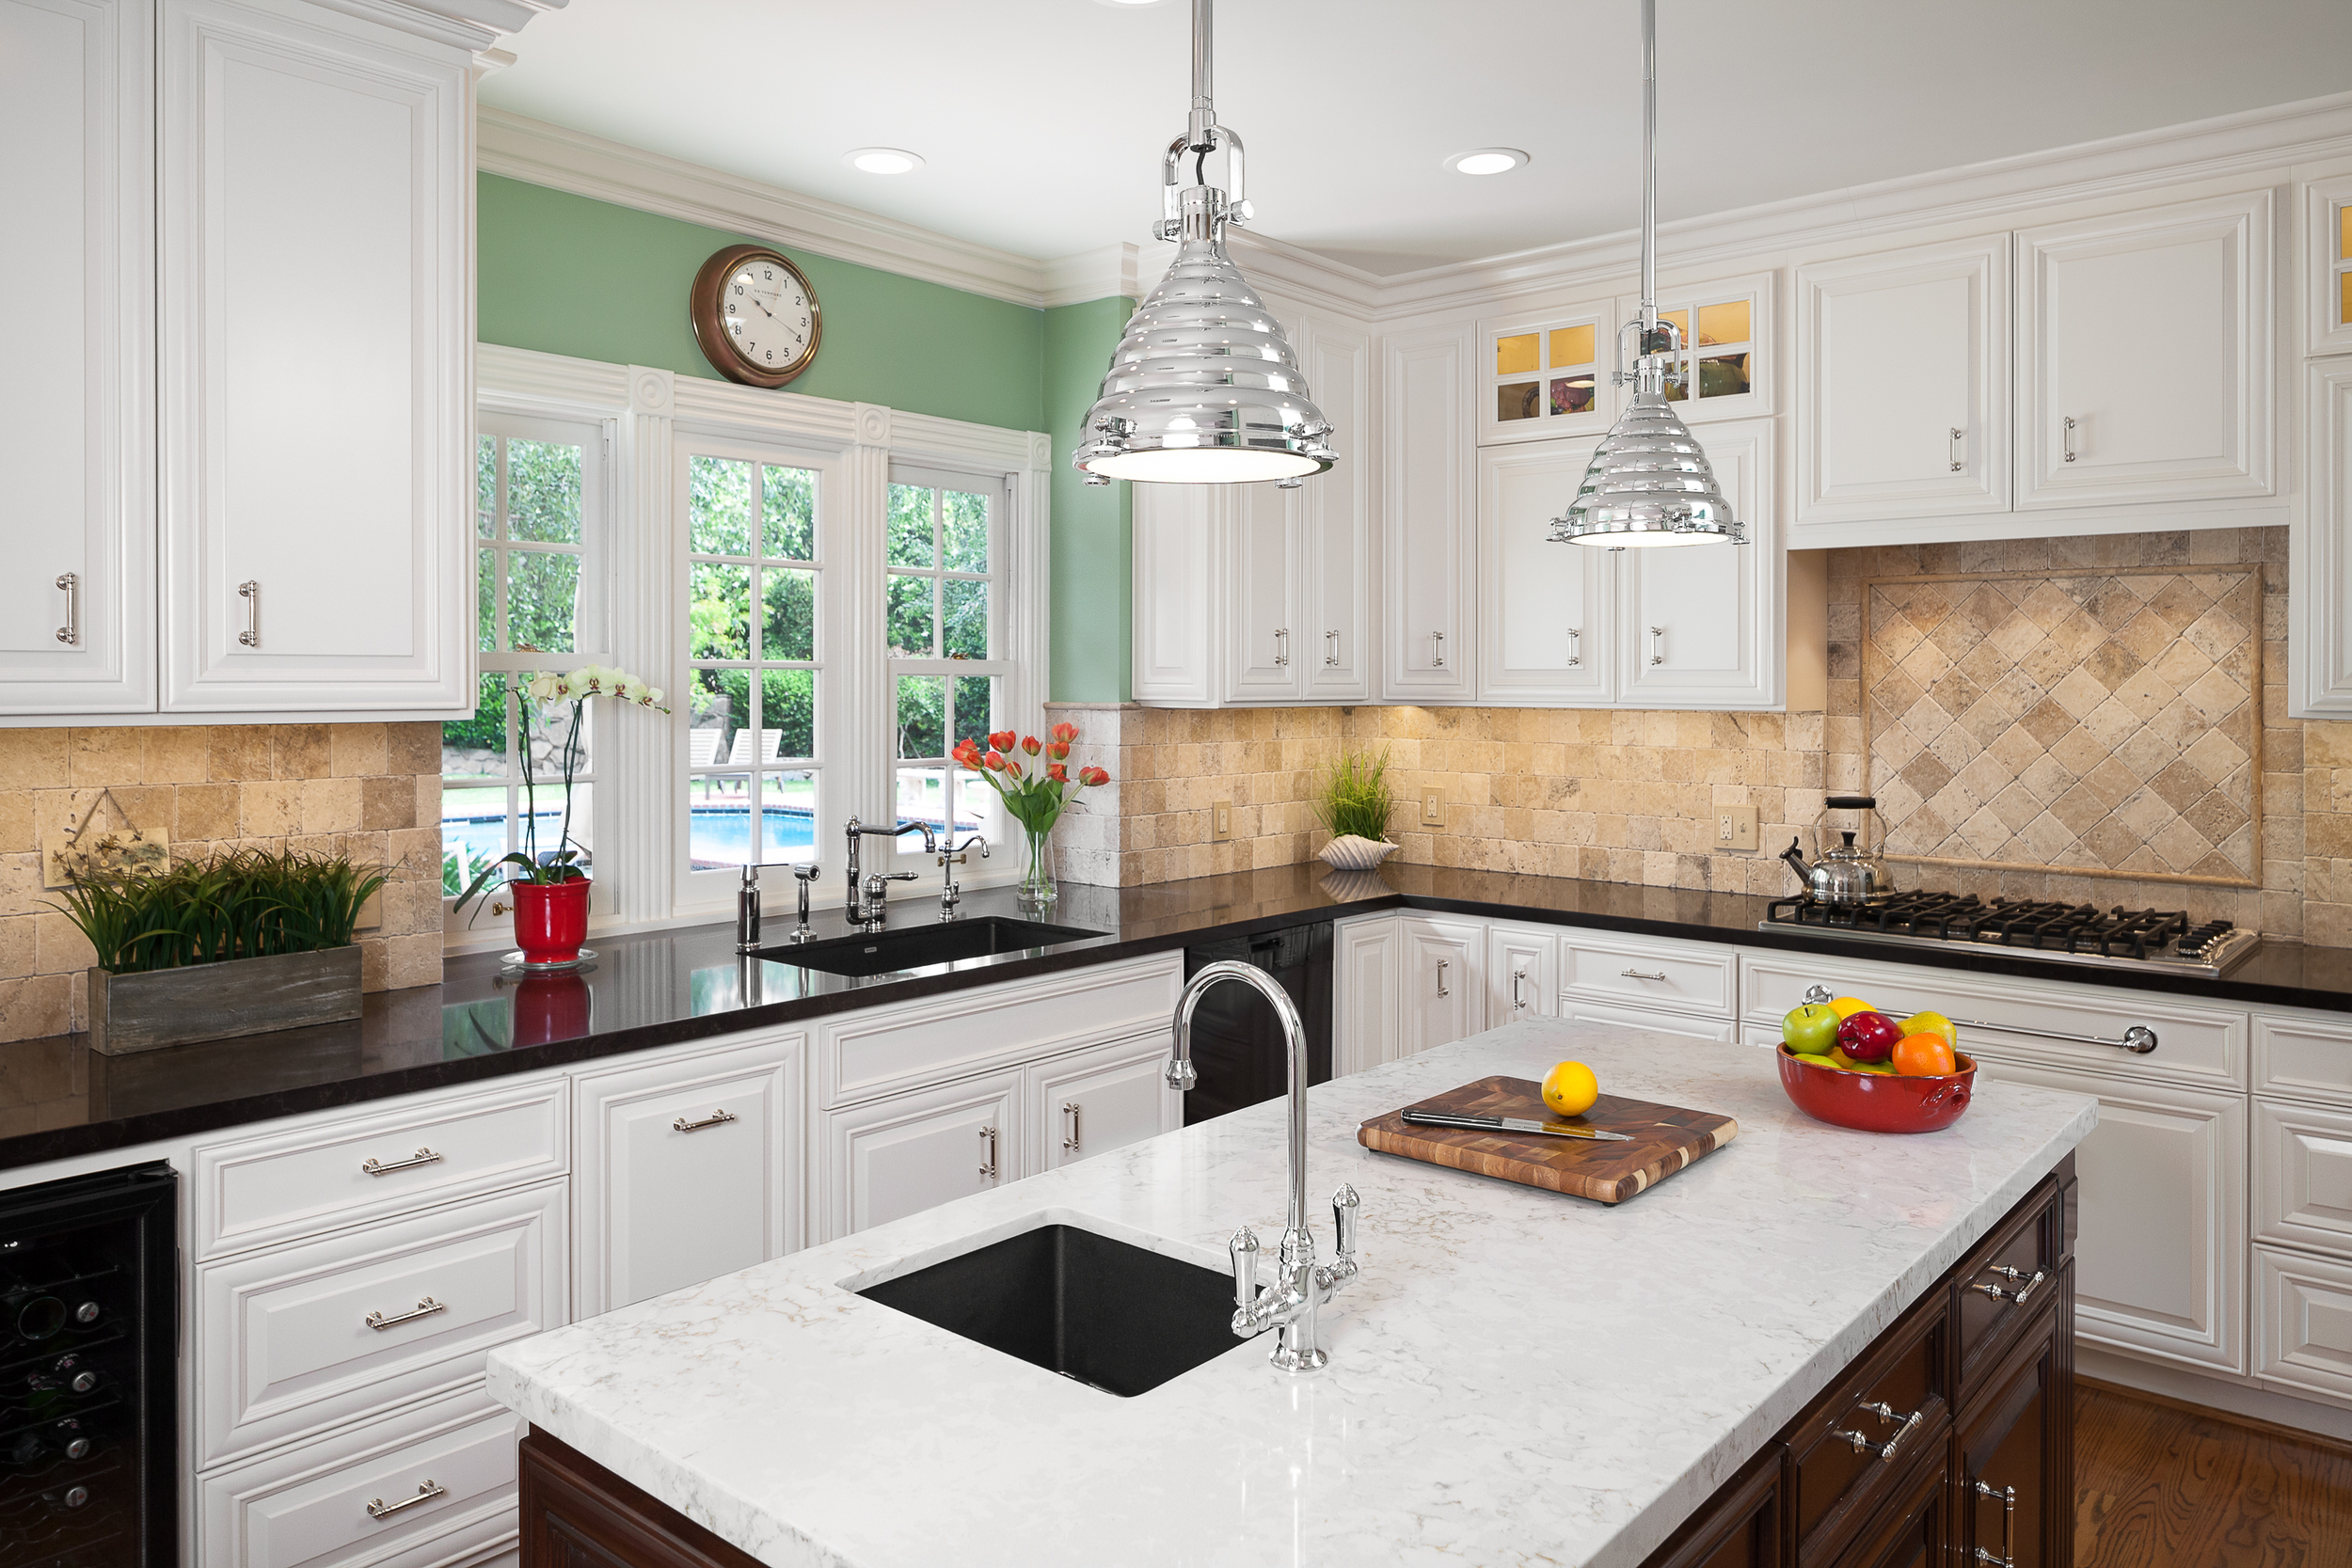 Cornerstone_LouiseRies_Kitchen-001.jpg